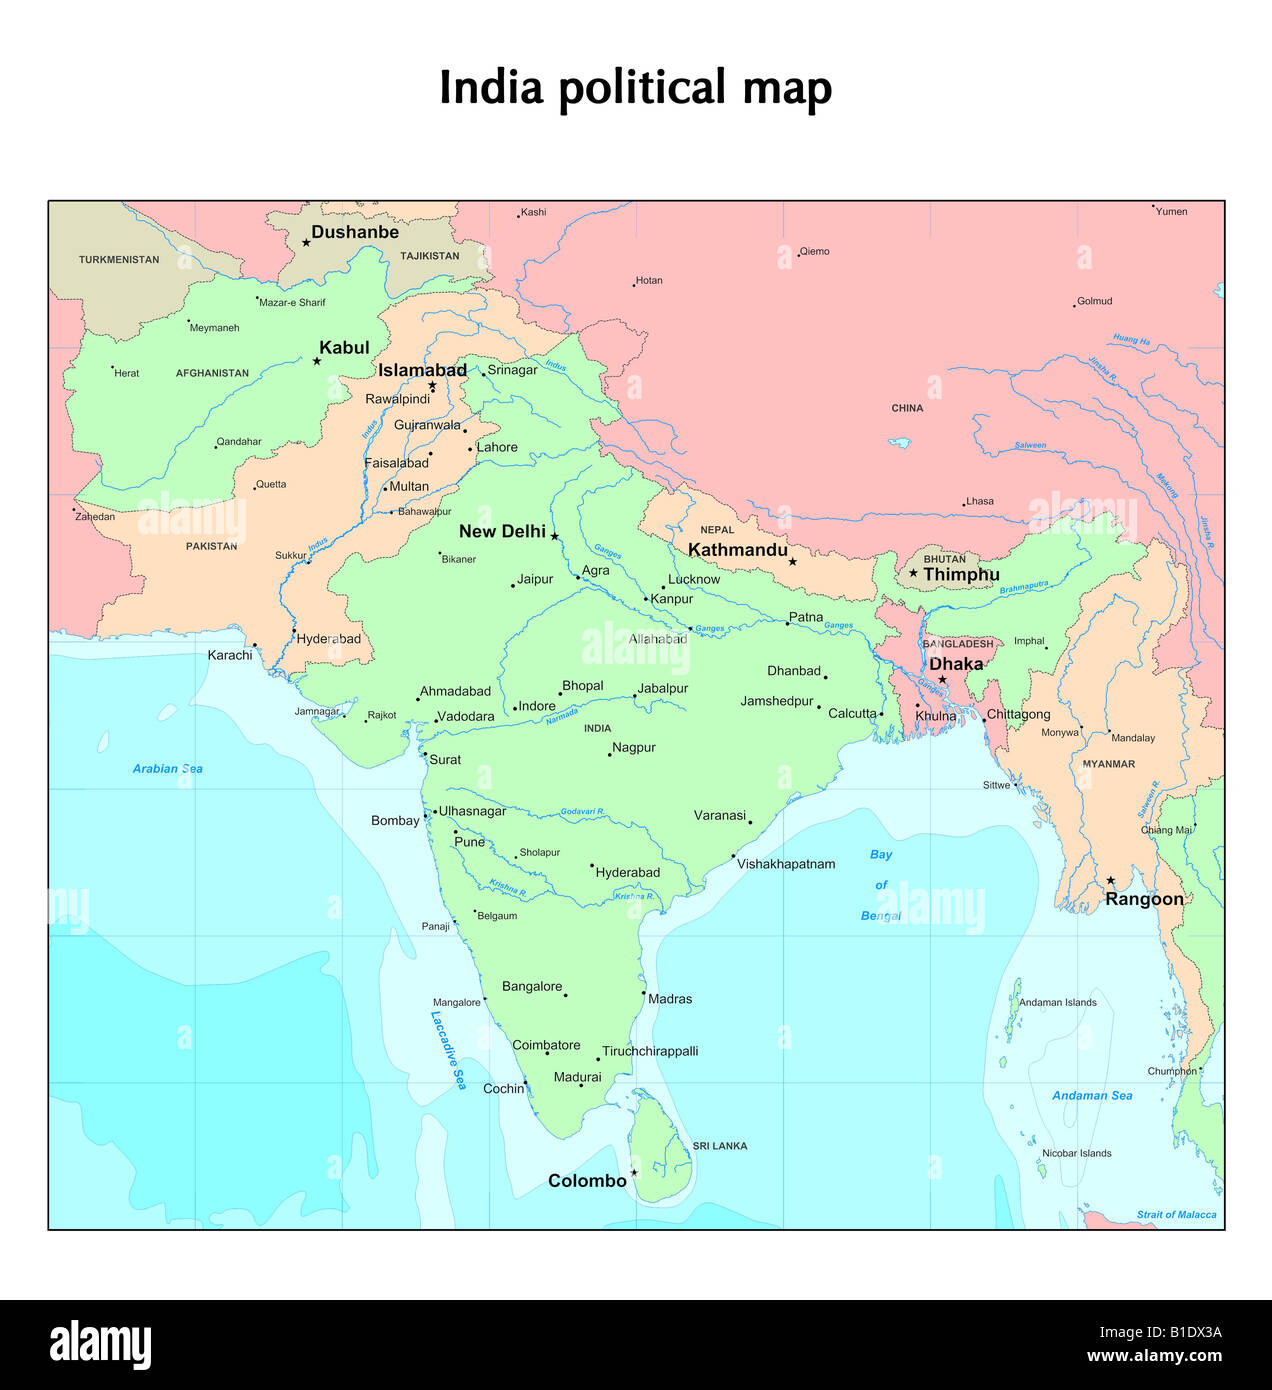 India political map Stock Photo: 18130878 - Alamy on kanpur india map, porbandar india map, kanchi india map, srinagar india map, raipur india map, goya india map, amritsar india map, india dharamsala map, nanjing india map, trivandrum india map, shimla india map, bhopal india map, gaya india map, vrindavan india map, gurgaon india map, prayaga india map, ajanta india map, delhi india map, gandhara india map, magadha india map,